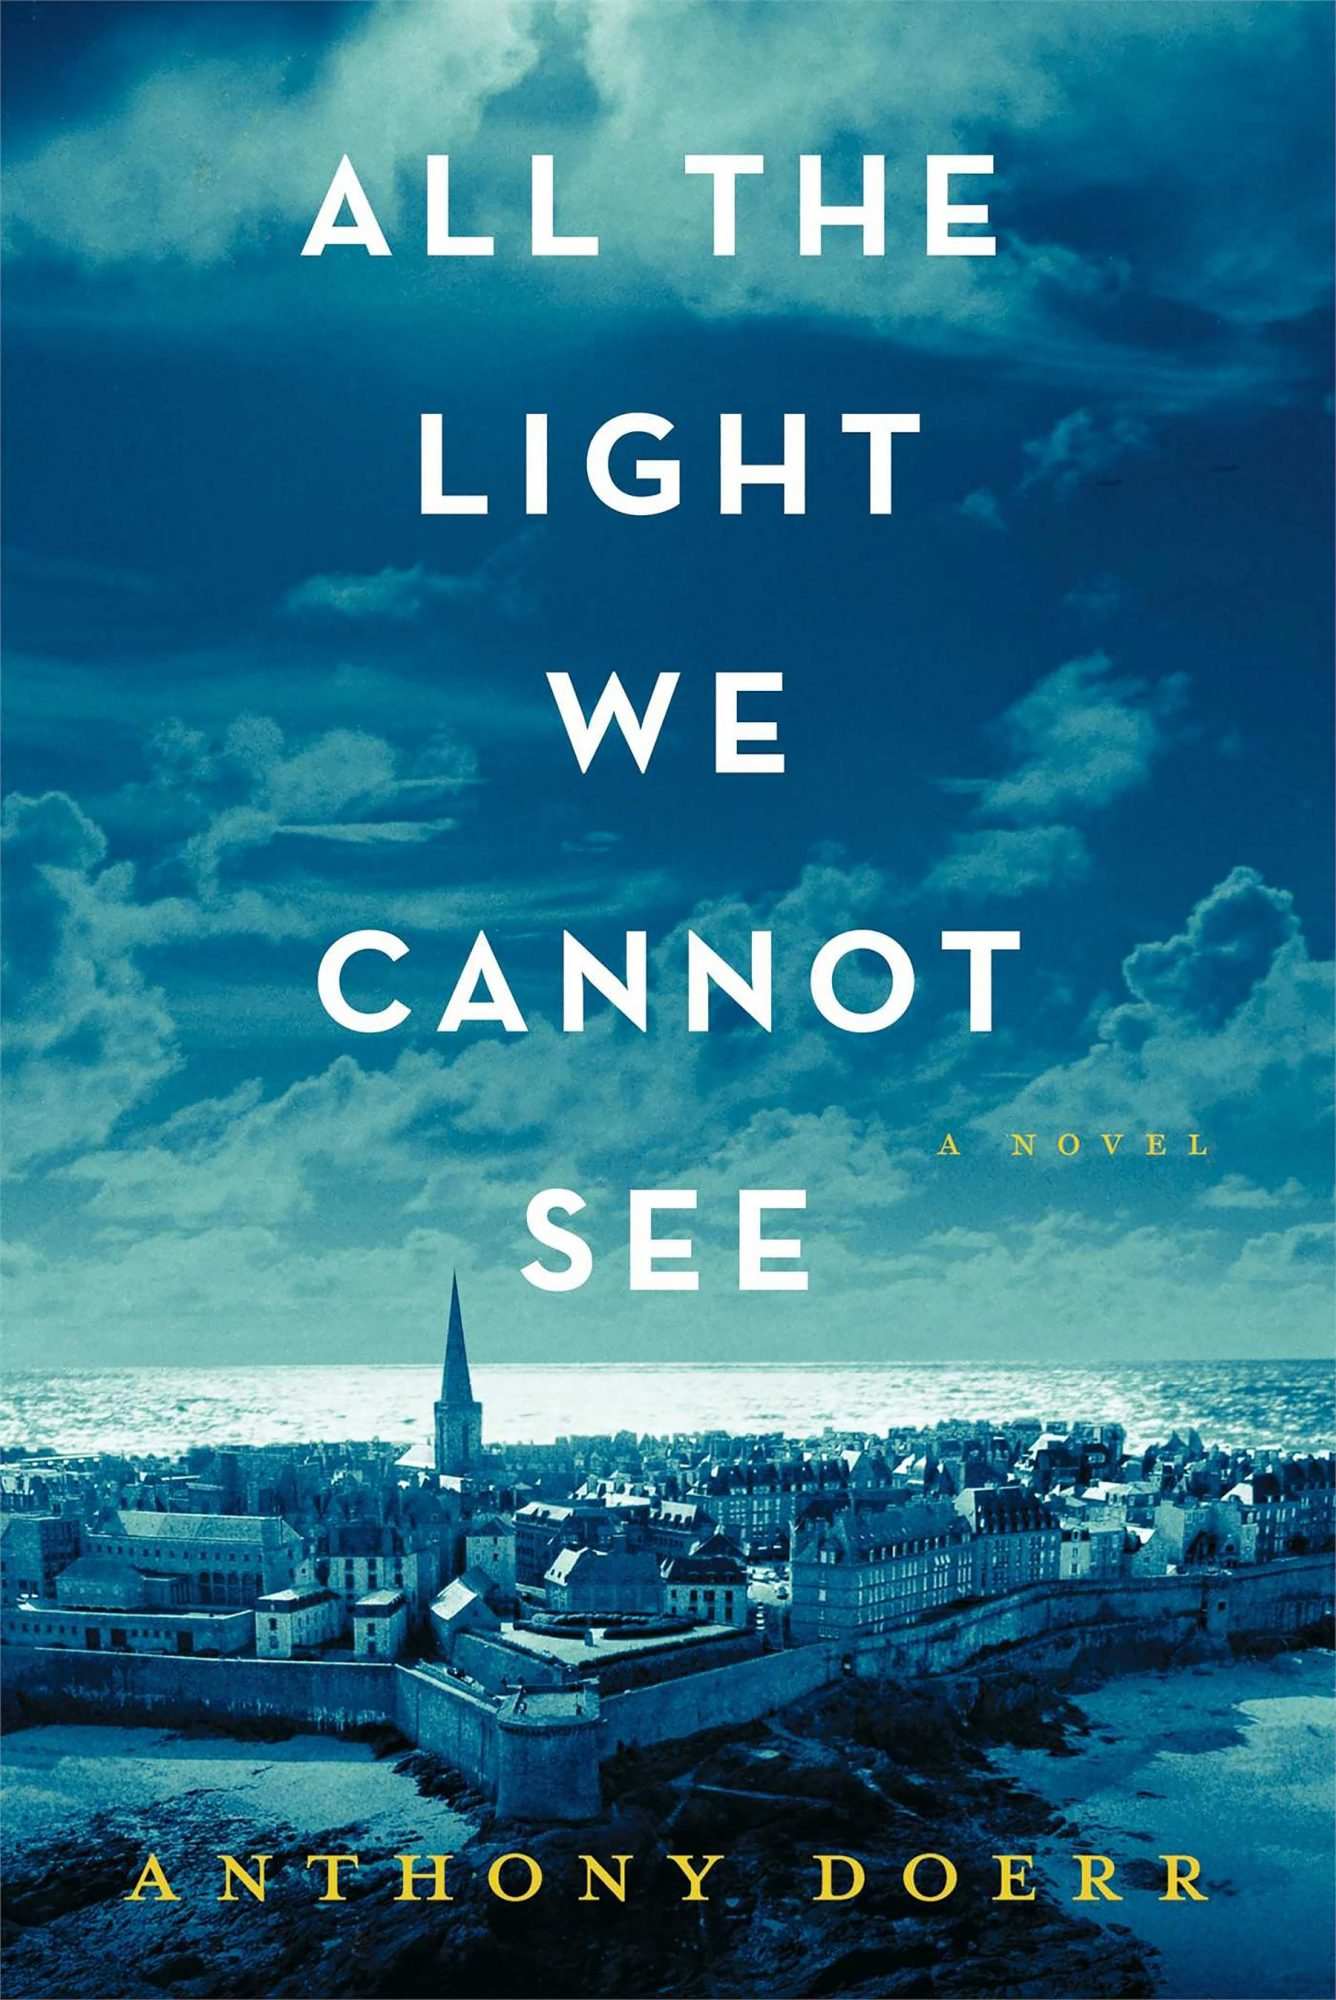 All the Light We Cannot See (5/6/14)by Anthony Doerr CR: Scribner